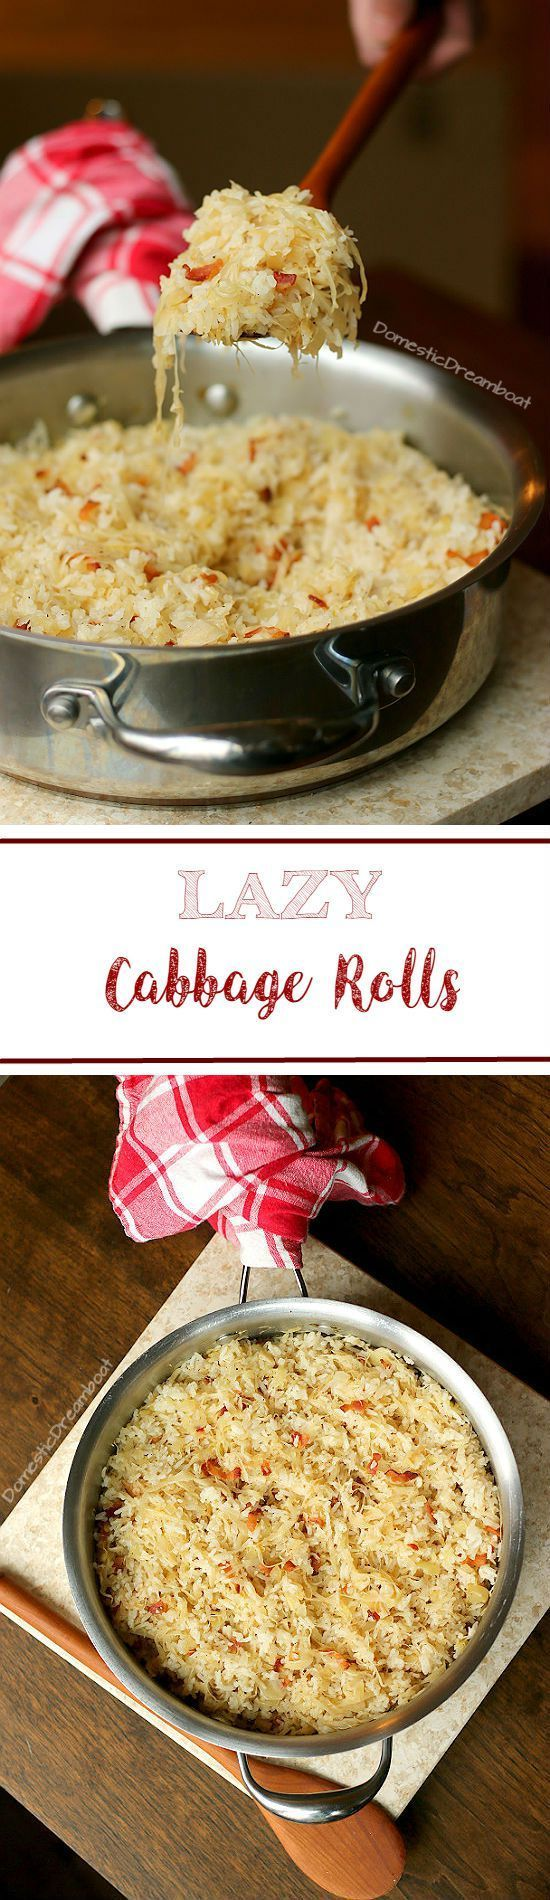 Lazy Cabbage Rolls - Domestic Dreamboat